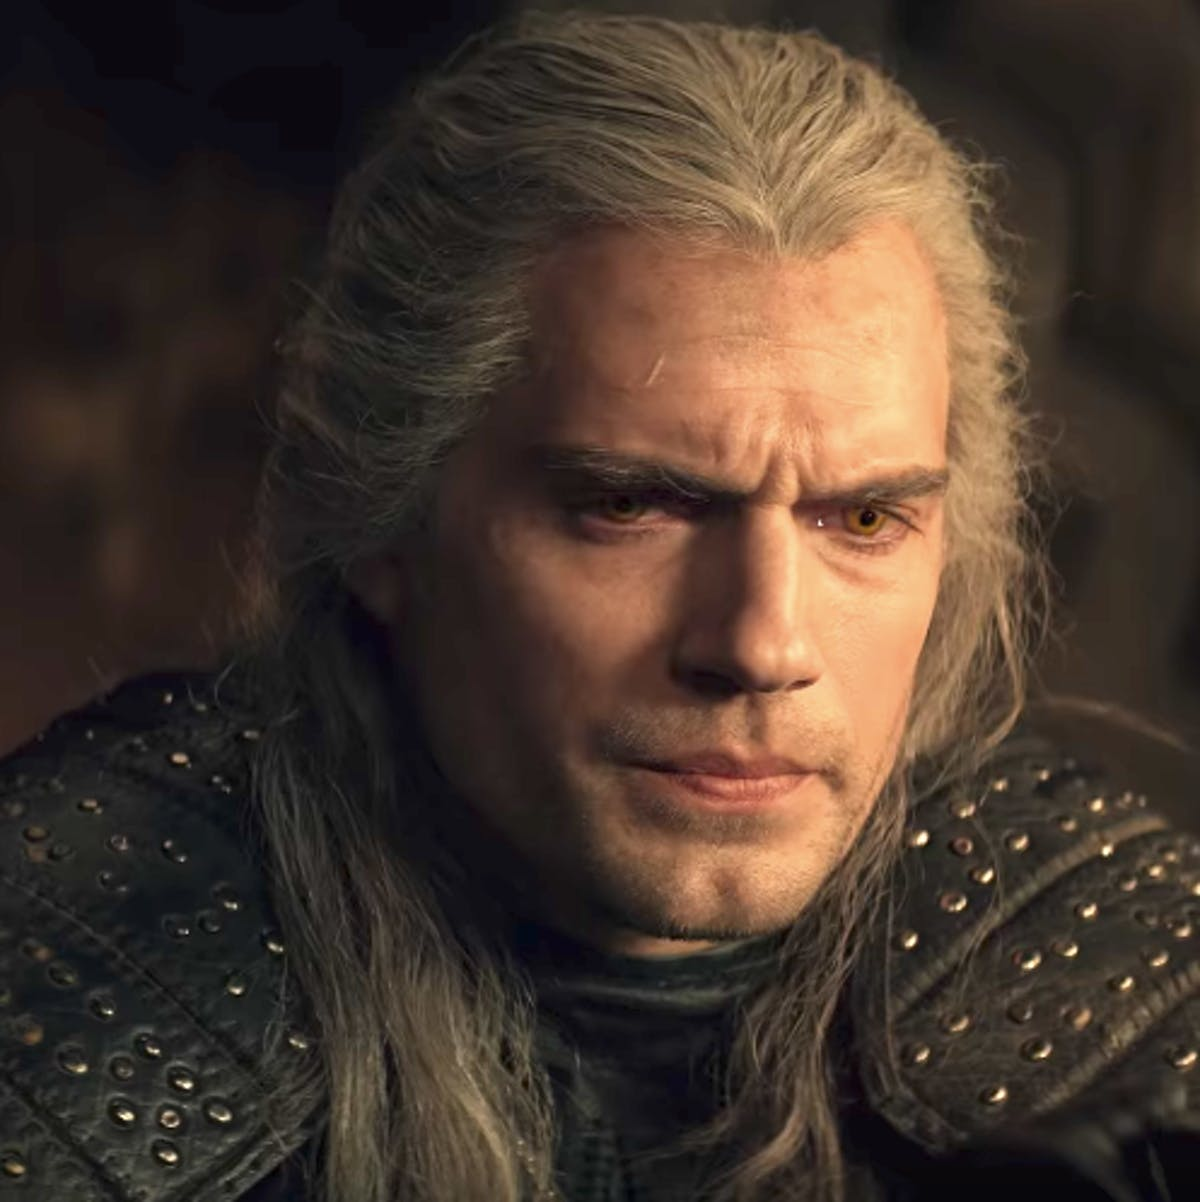 Henry Cavill's Witcher isn't the fantasy hero you're looking for